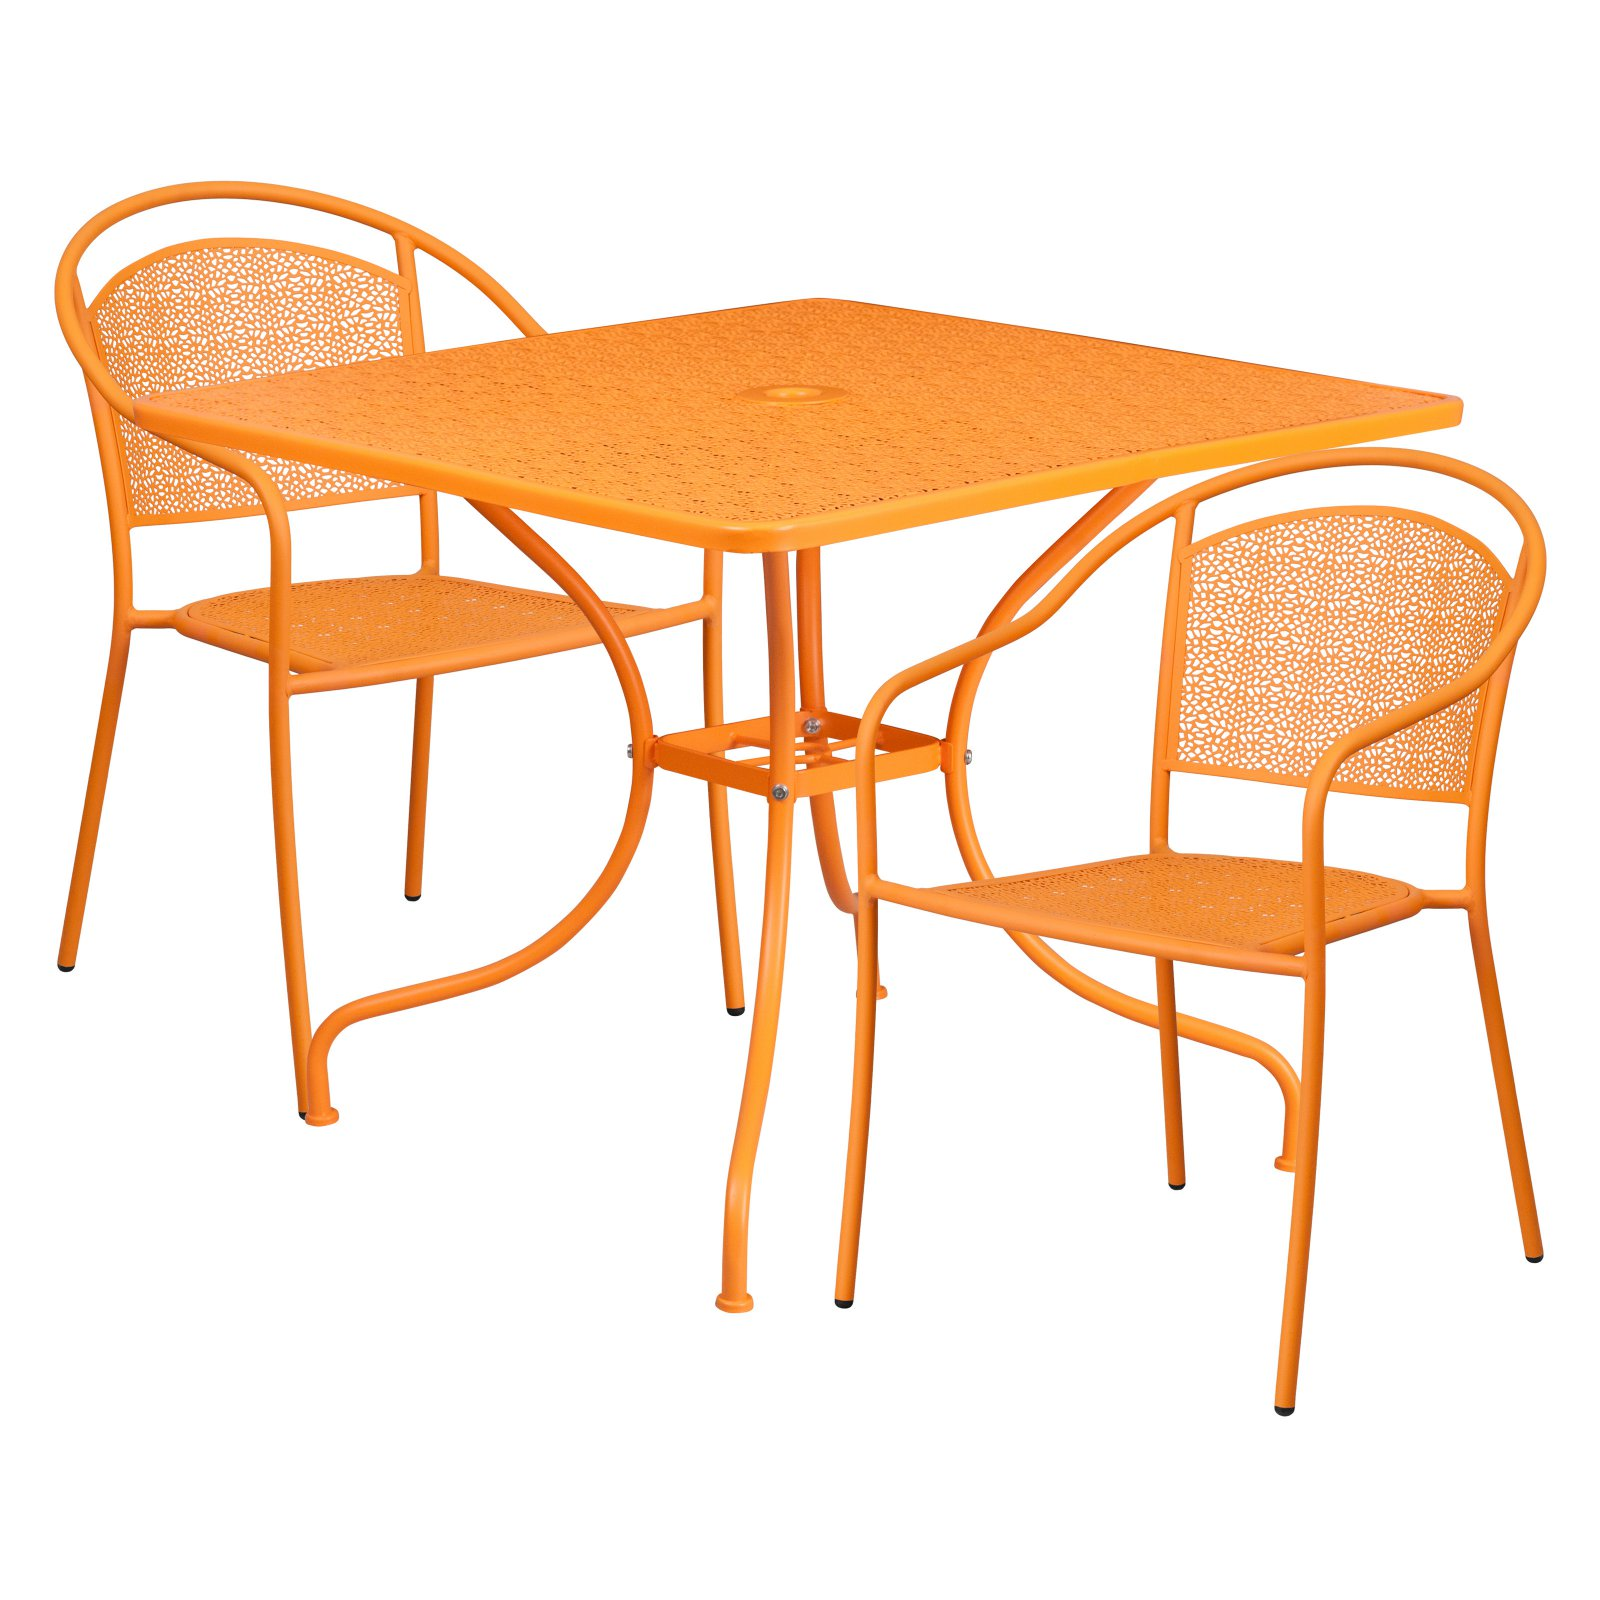 "Flash Furniture 35.5"" Square Indoor-Outdoor Steel Patio Table Set with 2 Round Back Chairs, Multiple Colors"